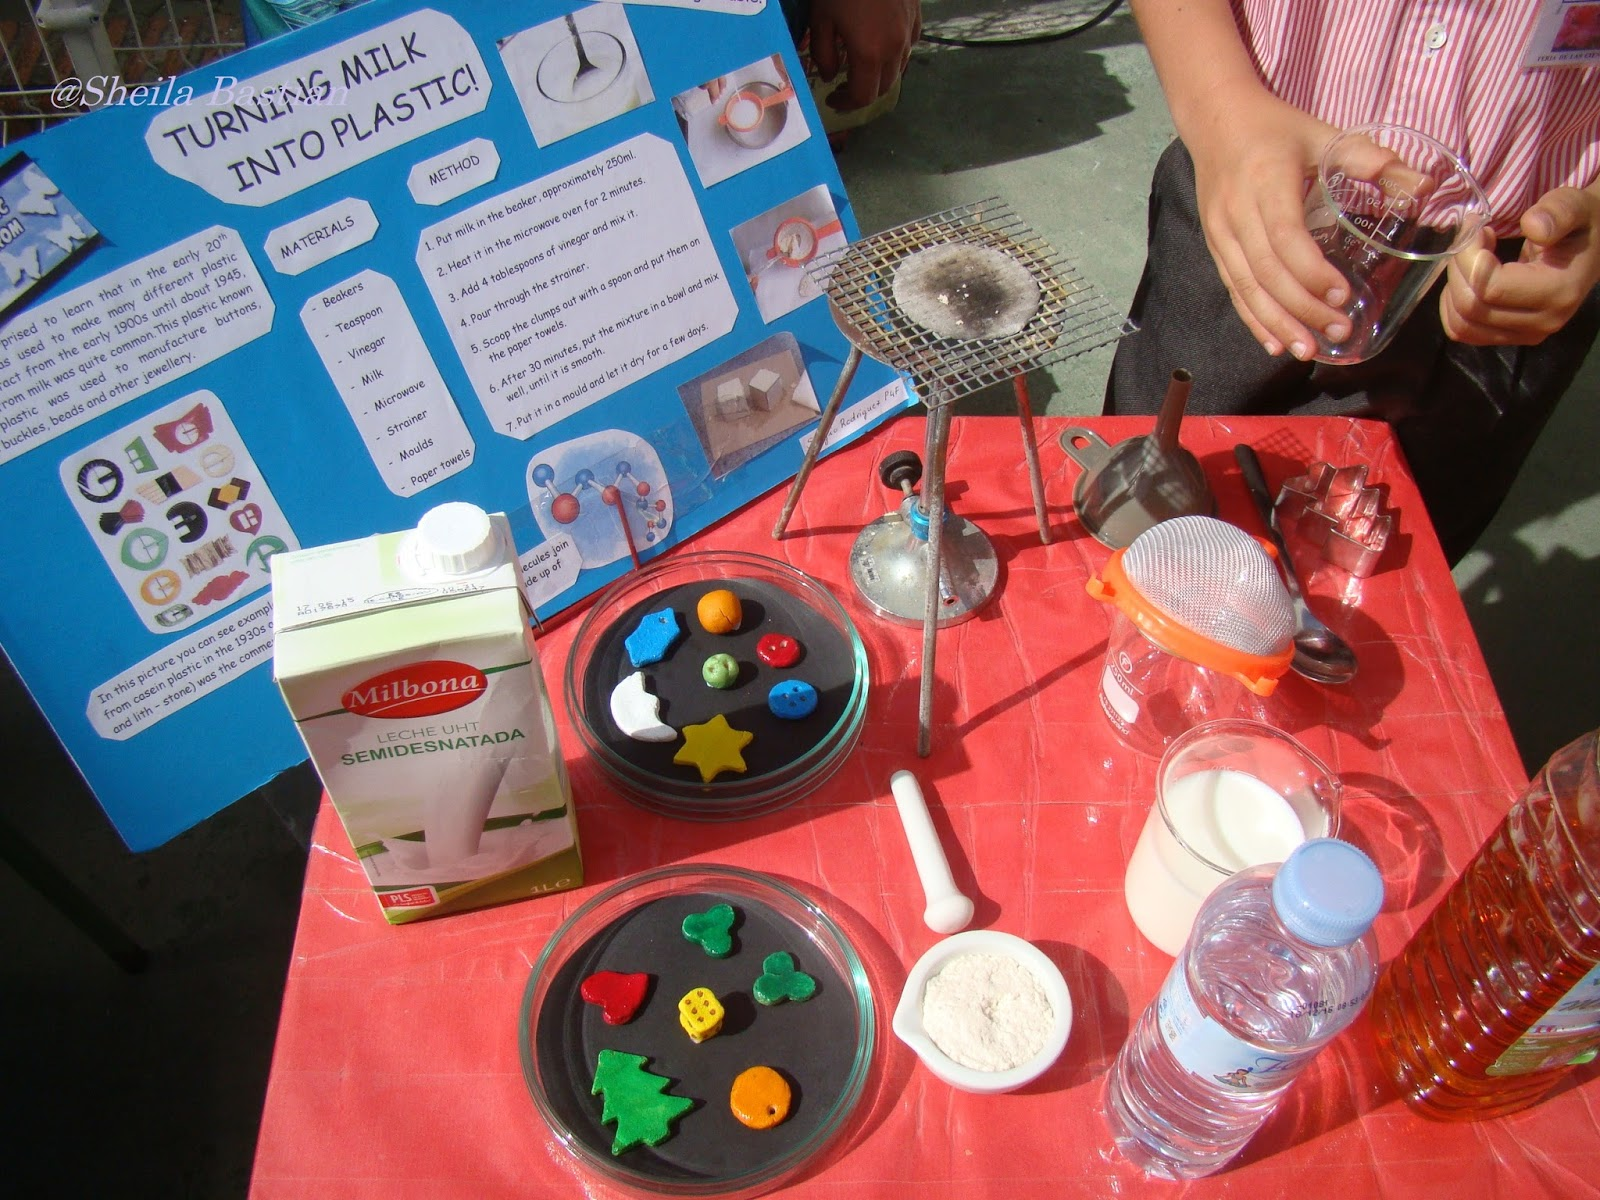 Science Magazine: SCIENCE FAIR PROJECT - TURNING MILK INTO PLASTIC! By ...